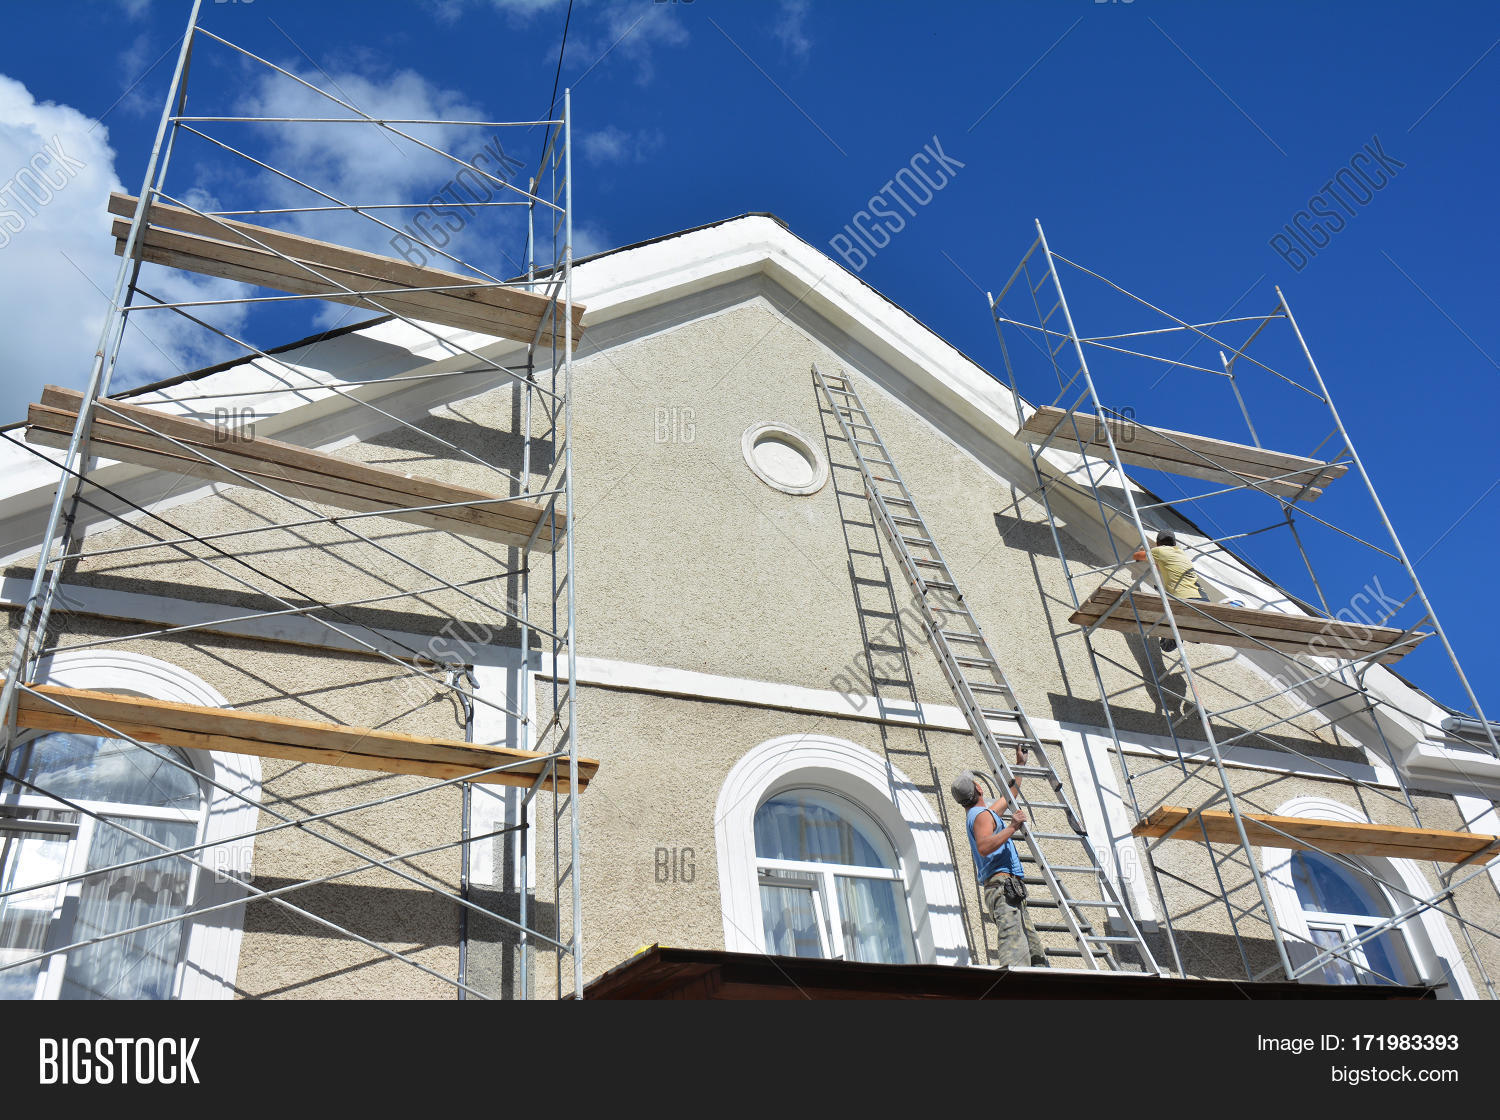 Painting And Plastering Exterior House Scaffolding Wall. Home Facade  Insulation And Painting Works During Exterior